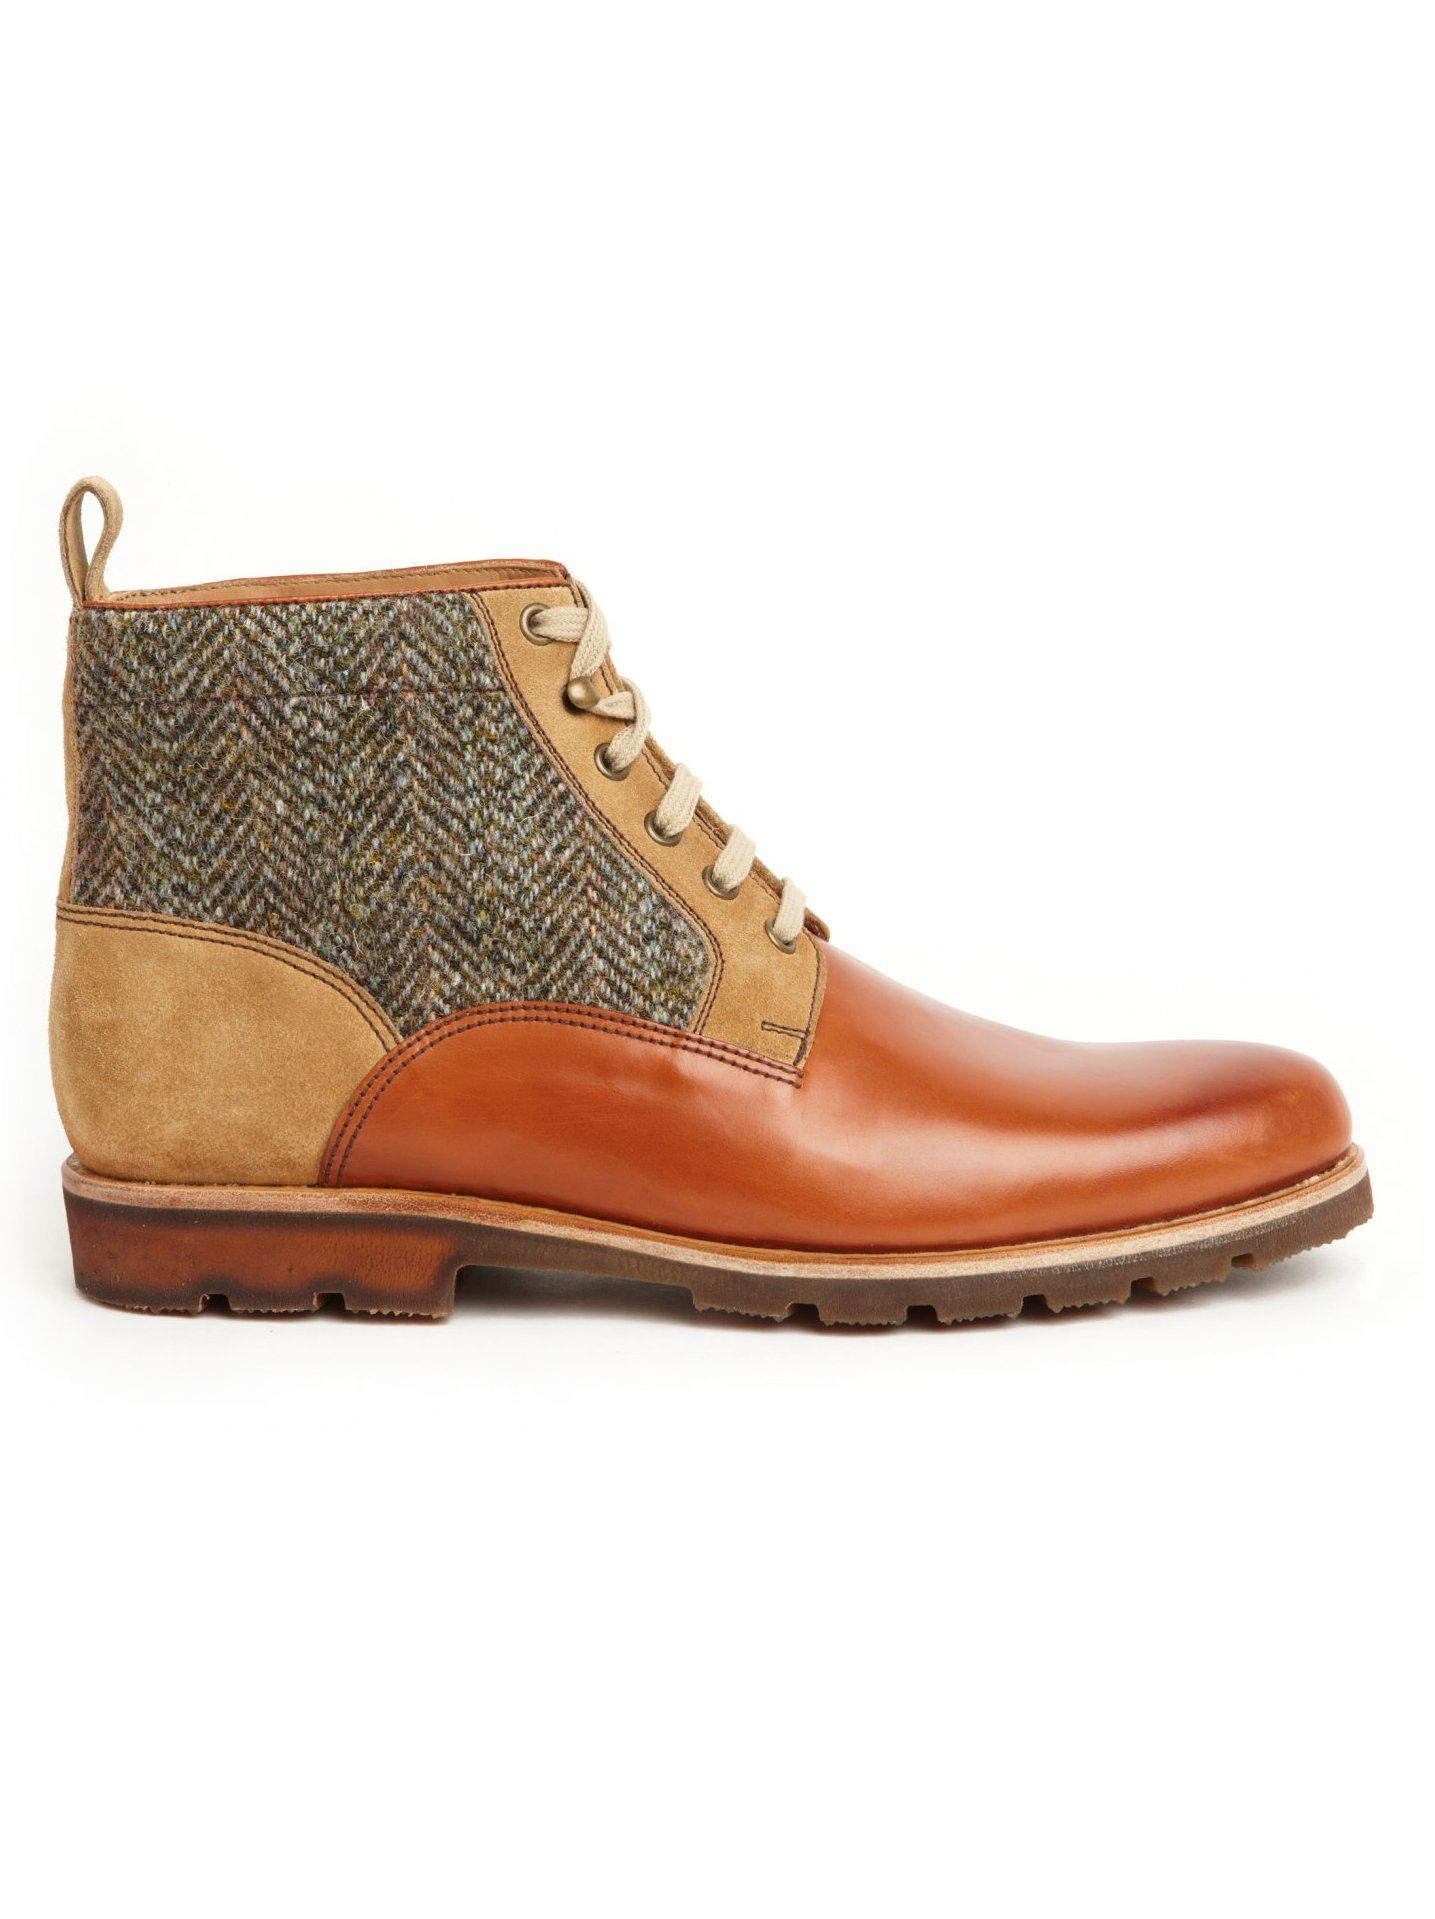 Monge. Brown ankle boot. Leather, suede and tweed.  #Fashion #Men #Shoes